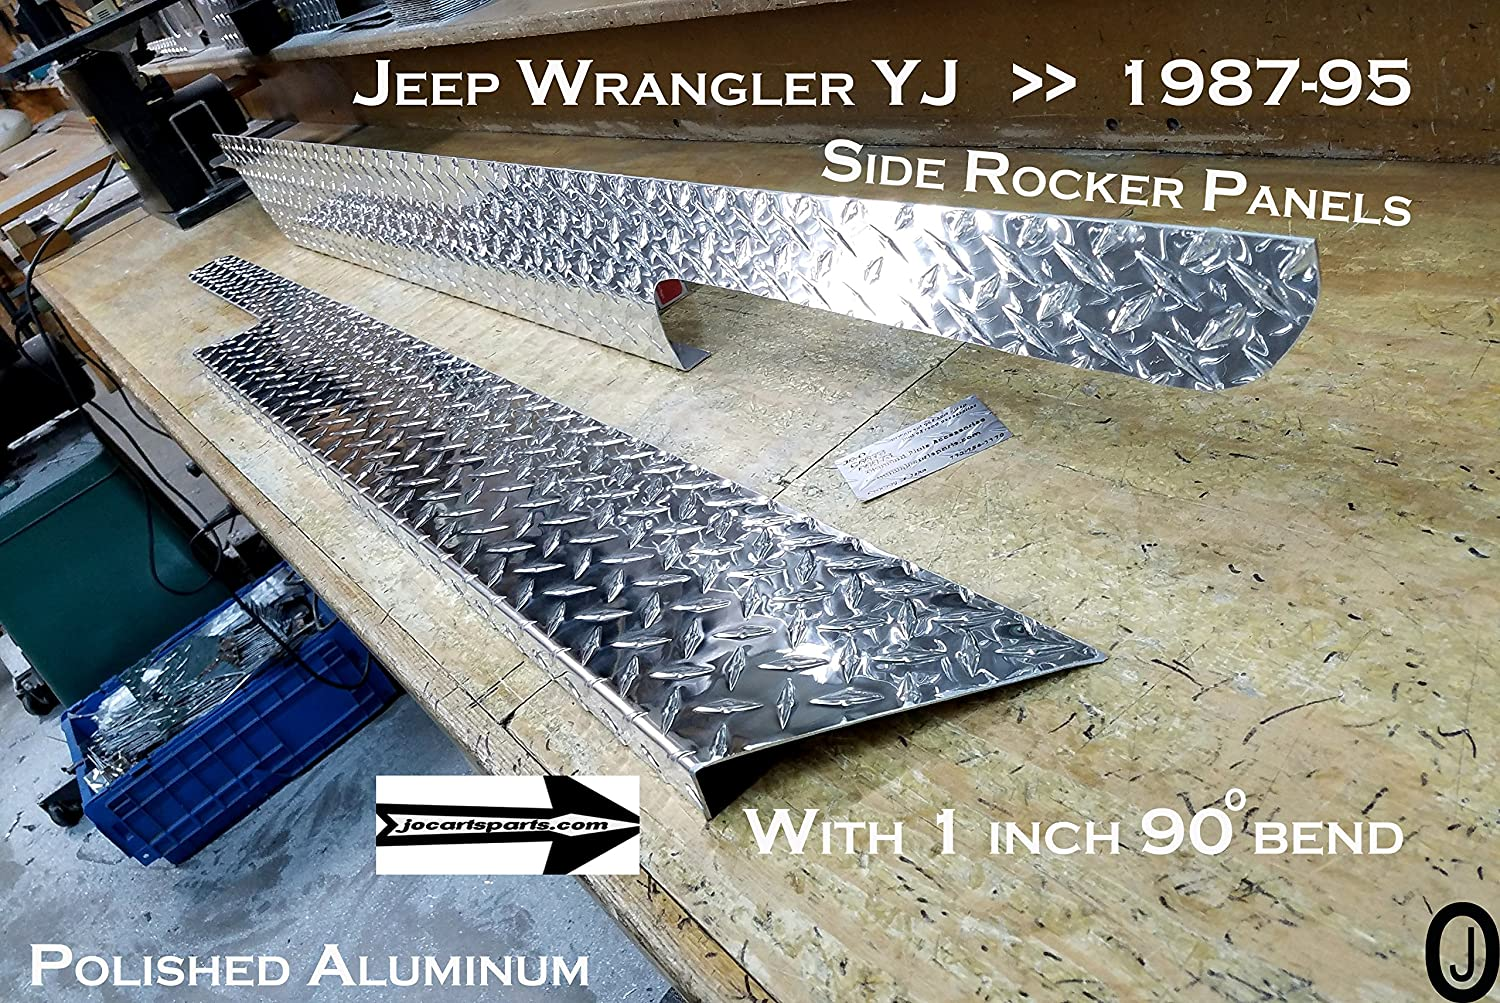 JEEP YJ Wrangler 6' Diamond plate Rocker Panel Guards with / 90° 1 inch lip J & O Carts Parts